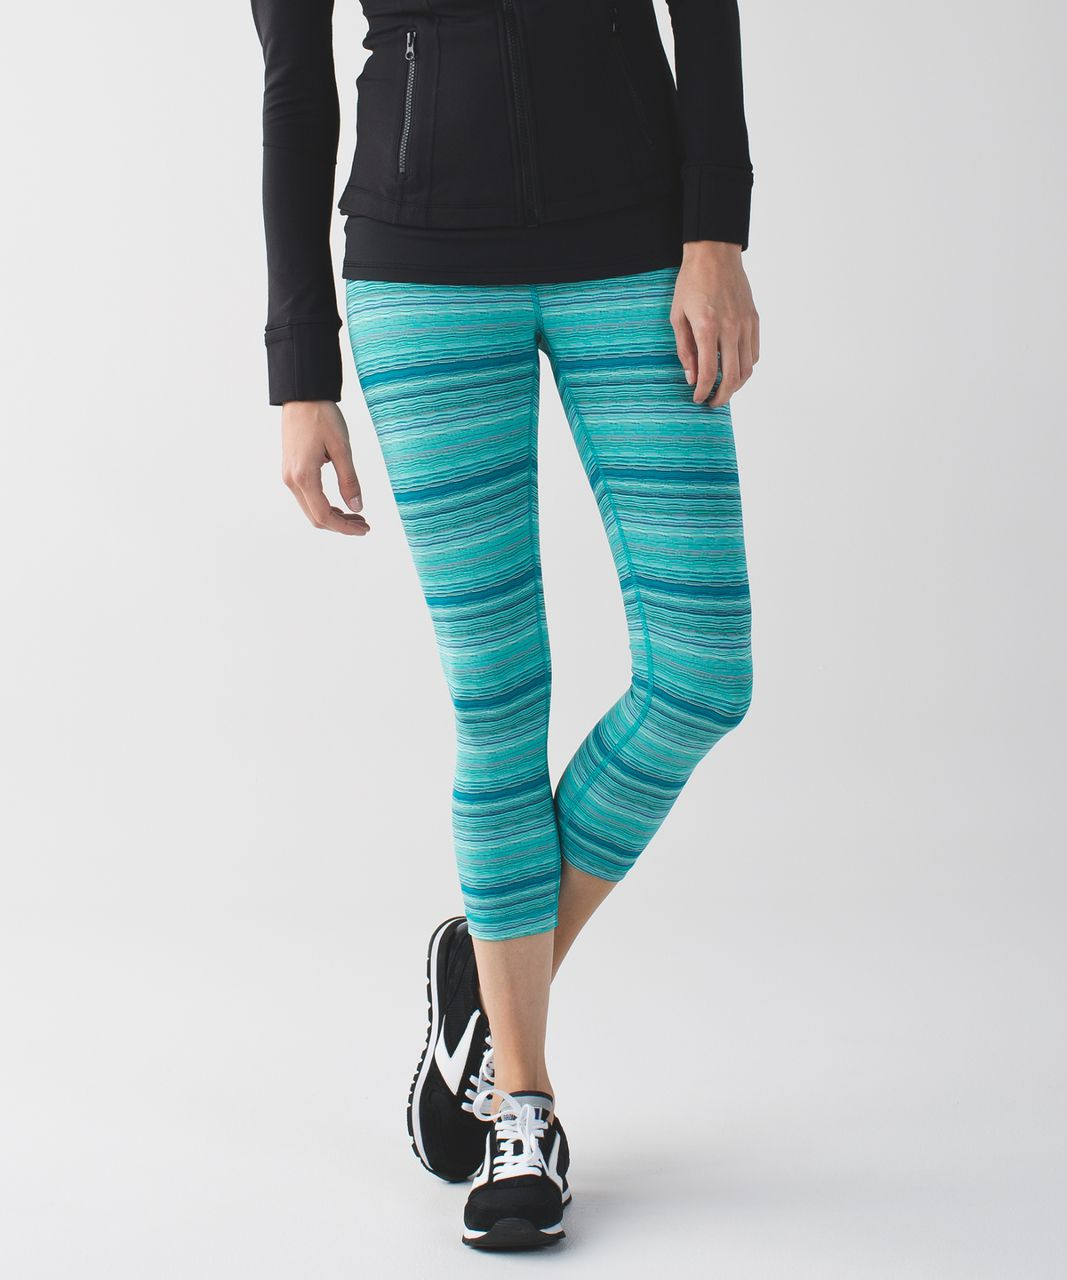 Lululemon Wunder Under Crop III *Luxtreme - Space Dye Twist Cosmic Teal Multi